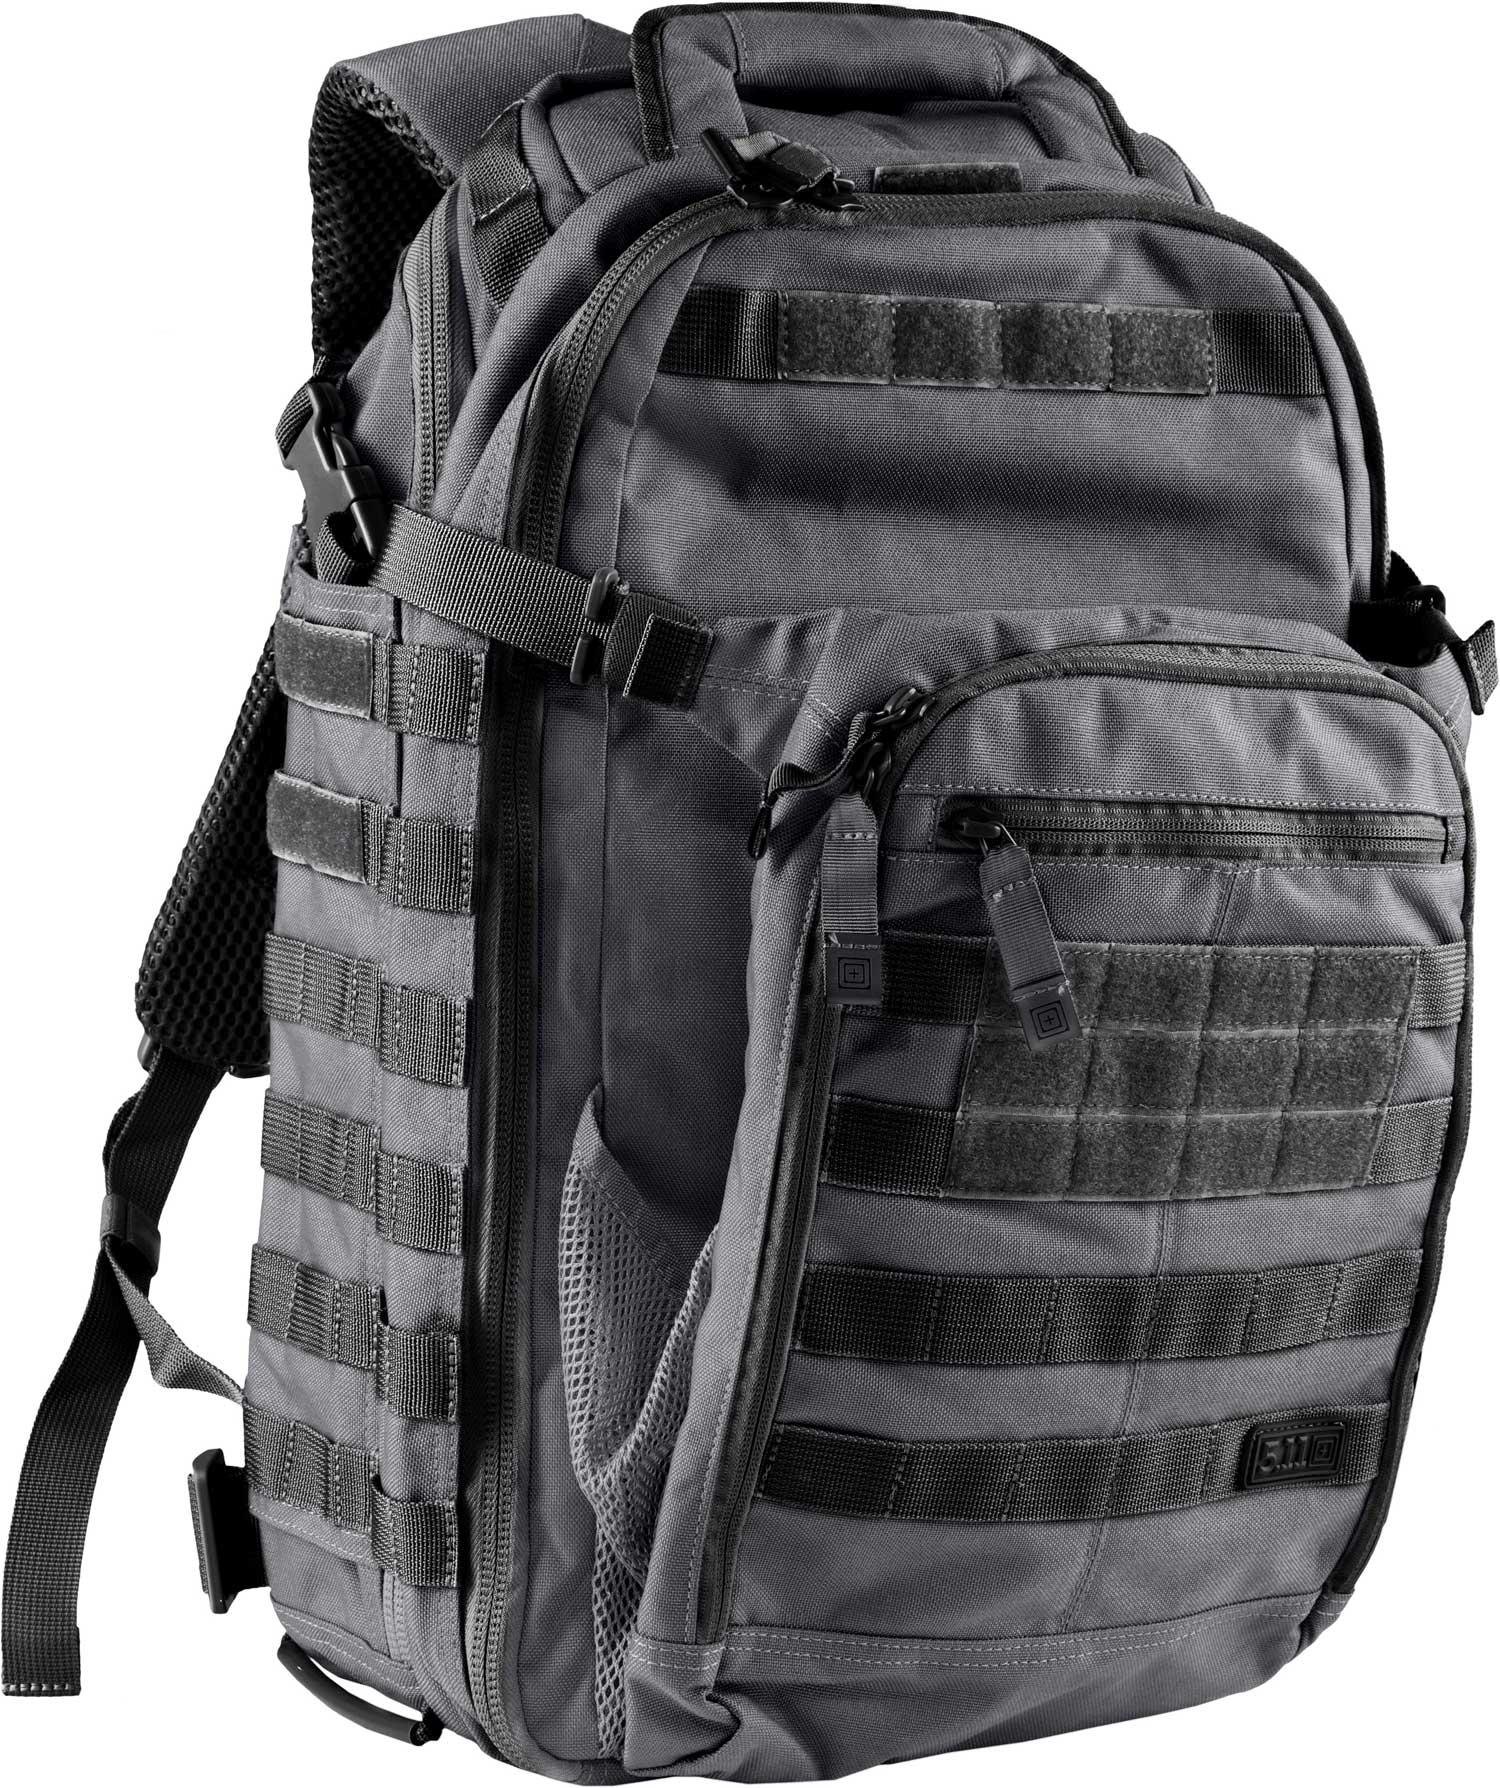 5.11 Tactical All Hazards Prime Double Tap